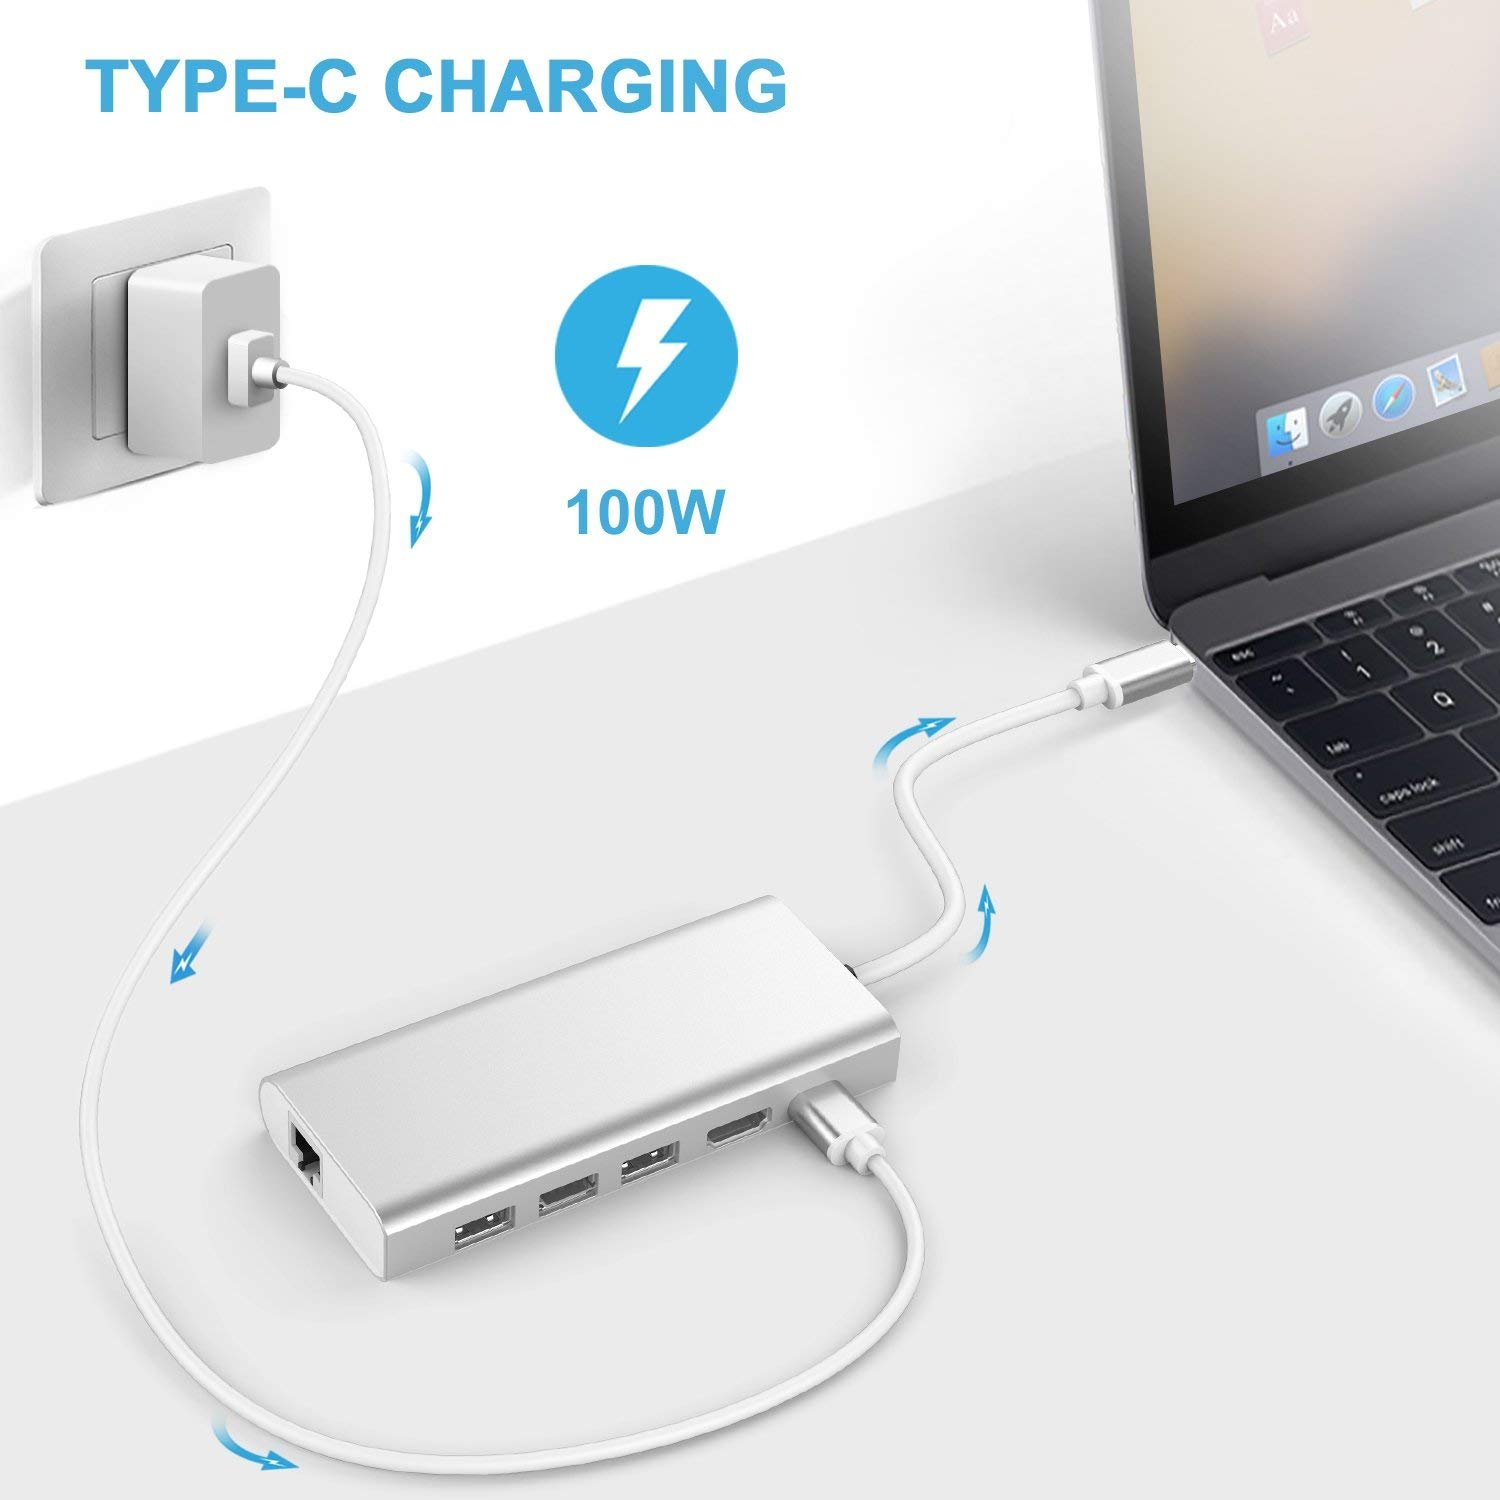 USB C Hub for Mackbook Pro / HP / Dell XPS - Multiport 6 in 1 Type C Hub Adapter with 4k HDMI VGA Display, Gigabit Ethernet, 3 USB 3.0 Ports, Type C Charging Port - Aluminum Grey